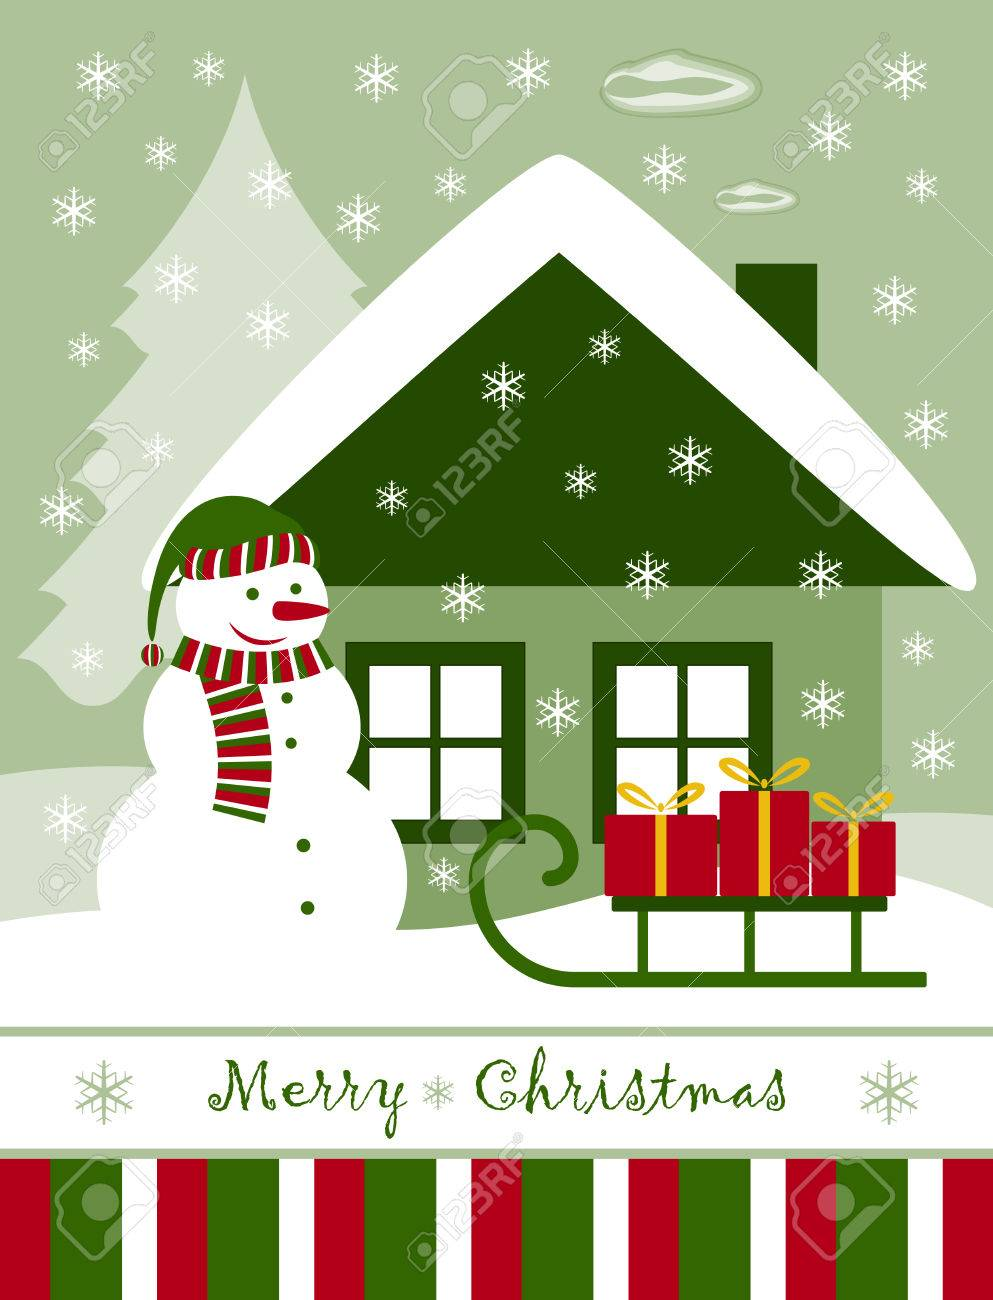 vector Christmas card with snowman, cottage and gifts on sledge Stock Vector - 8454193